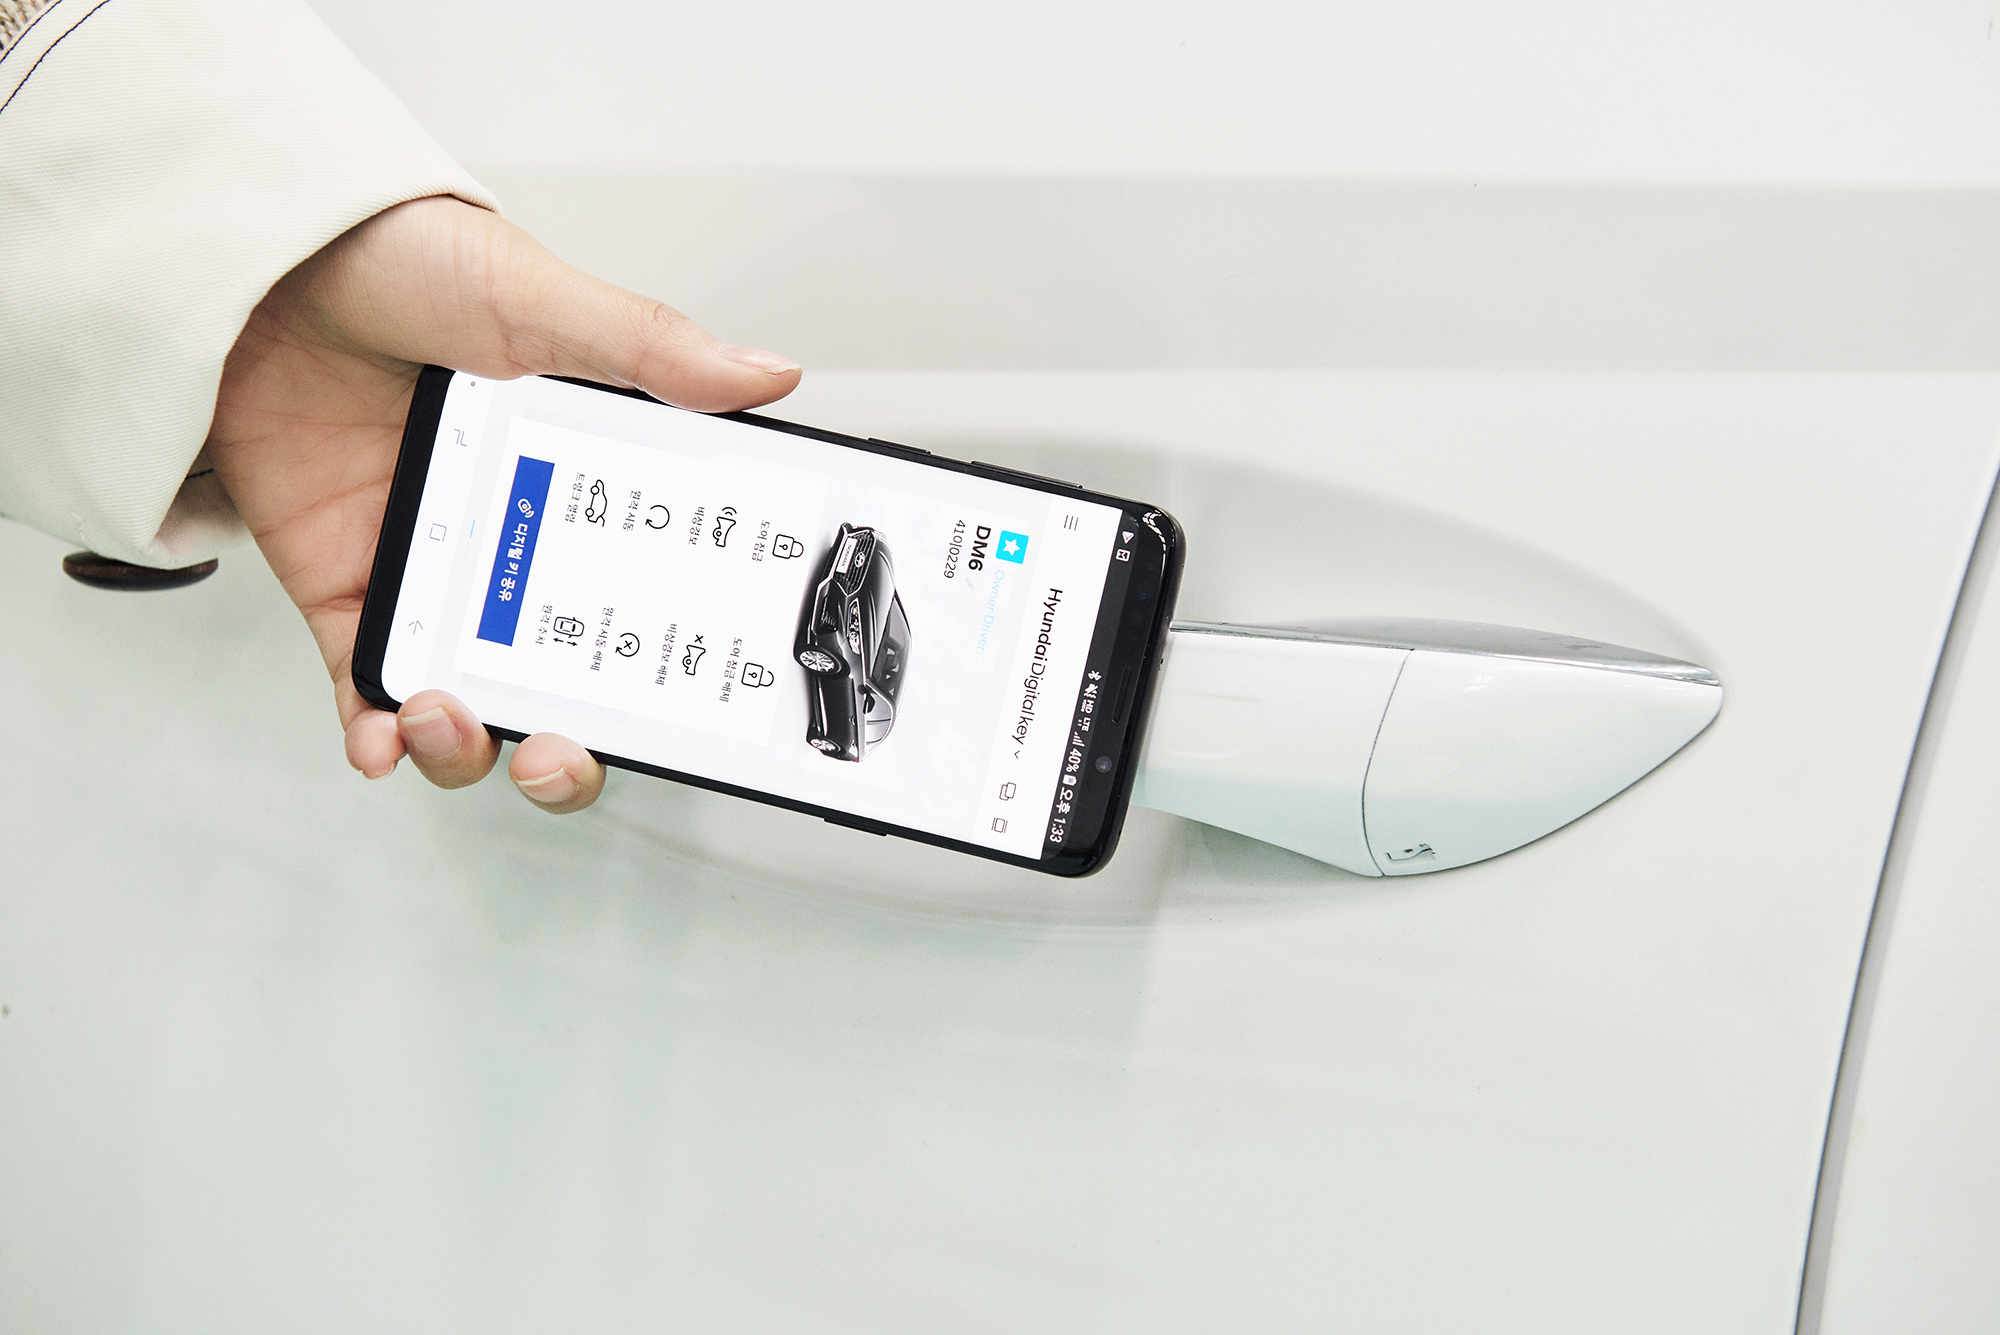 hyundai's latest app turns a smartphone into your car key